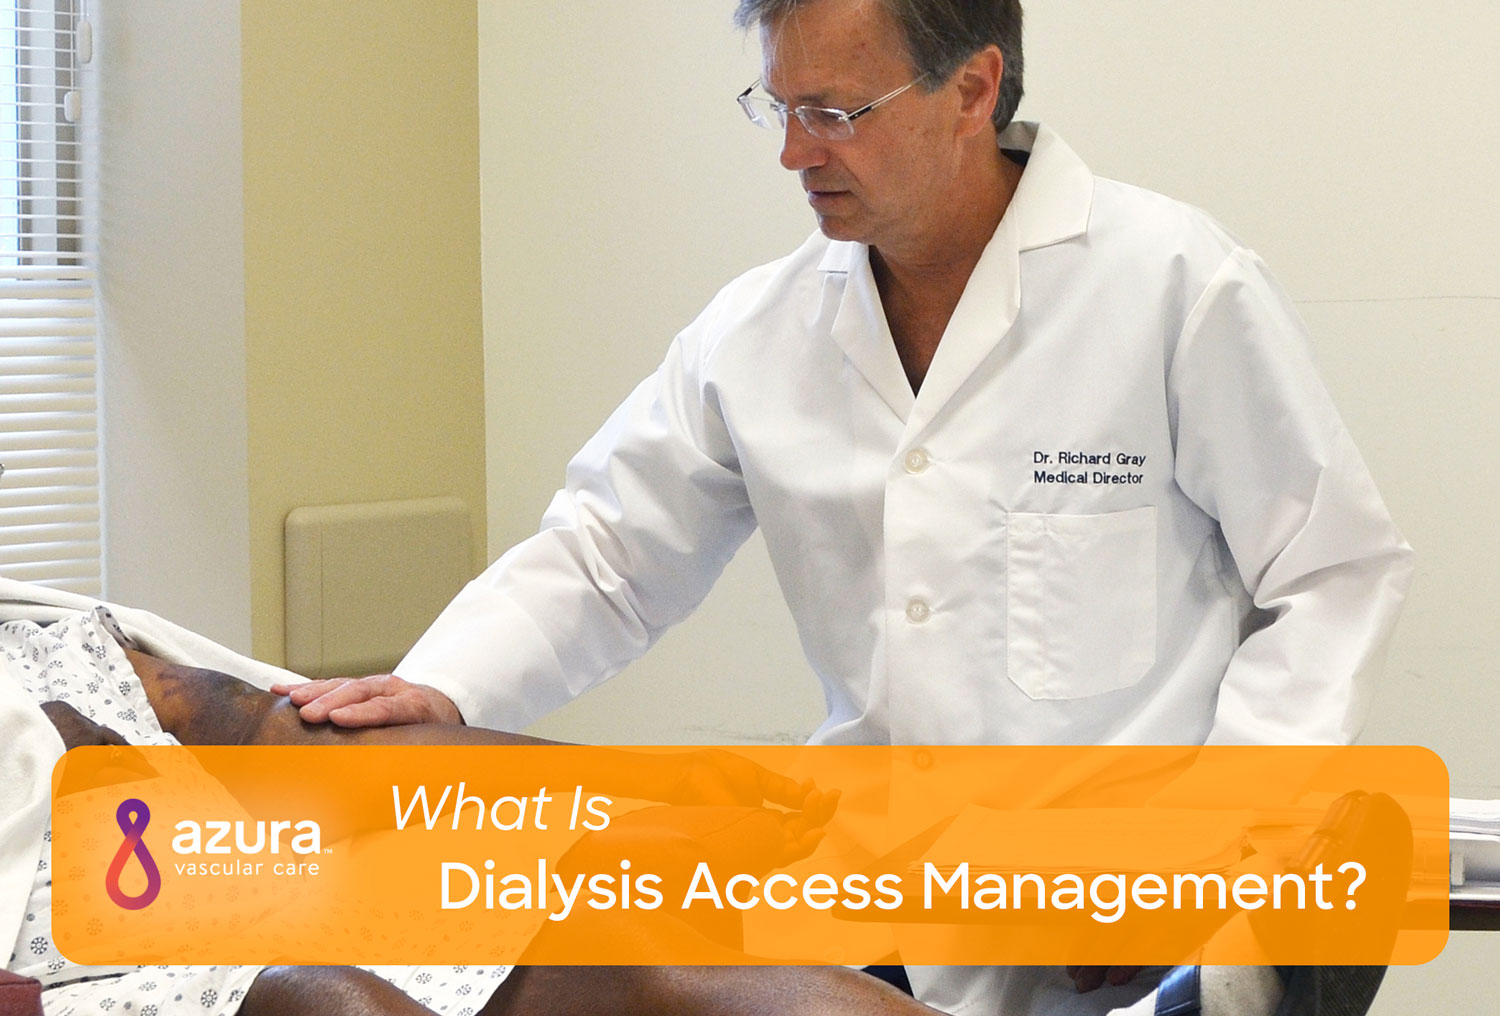 What Is Dialysis Access Management